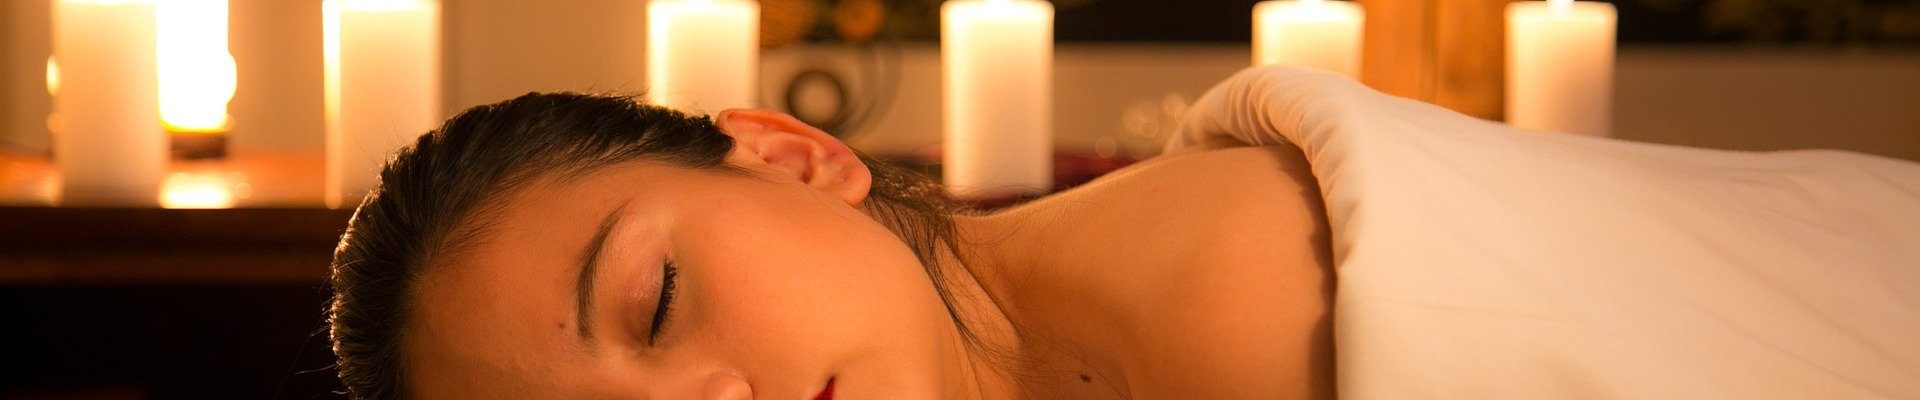 relaxation-3065577_1920 (1)